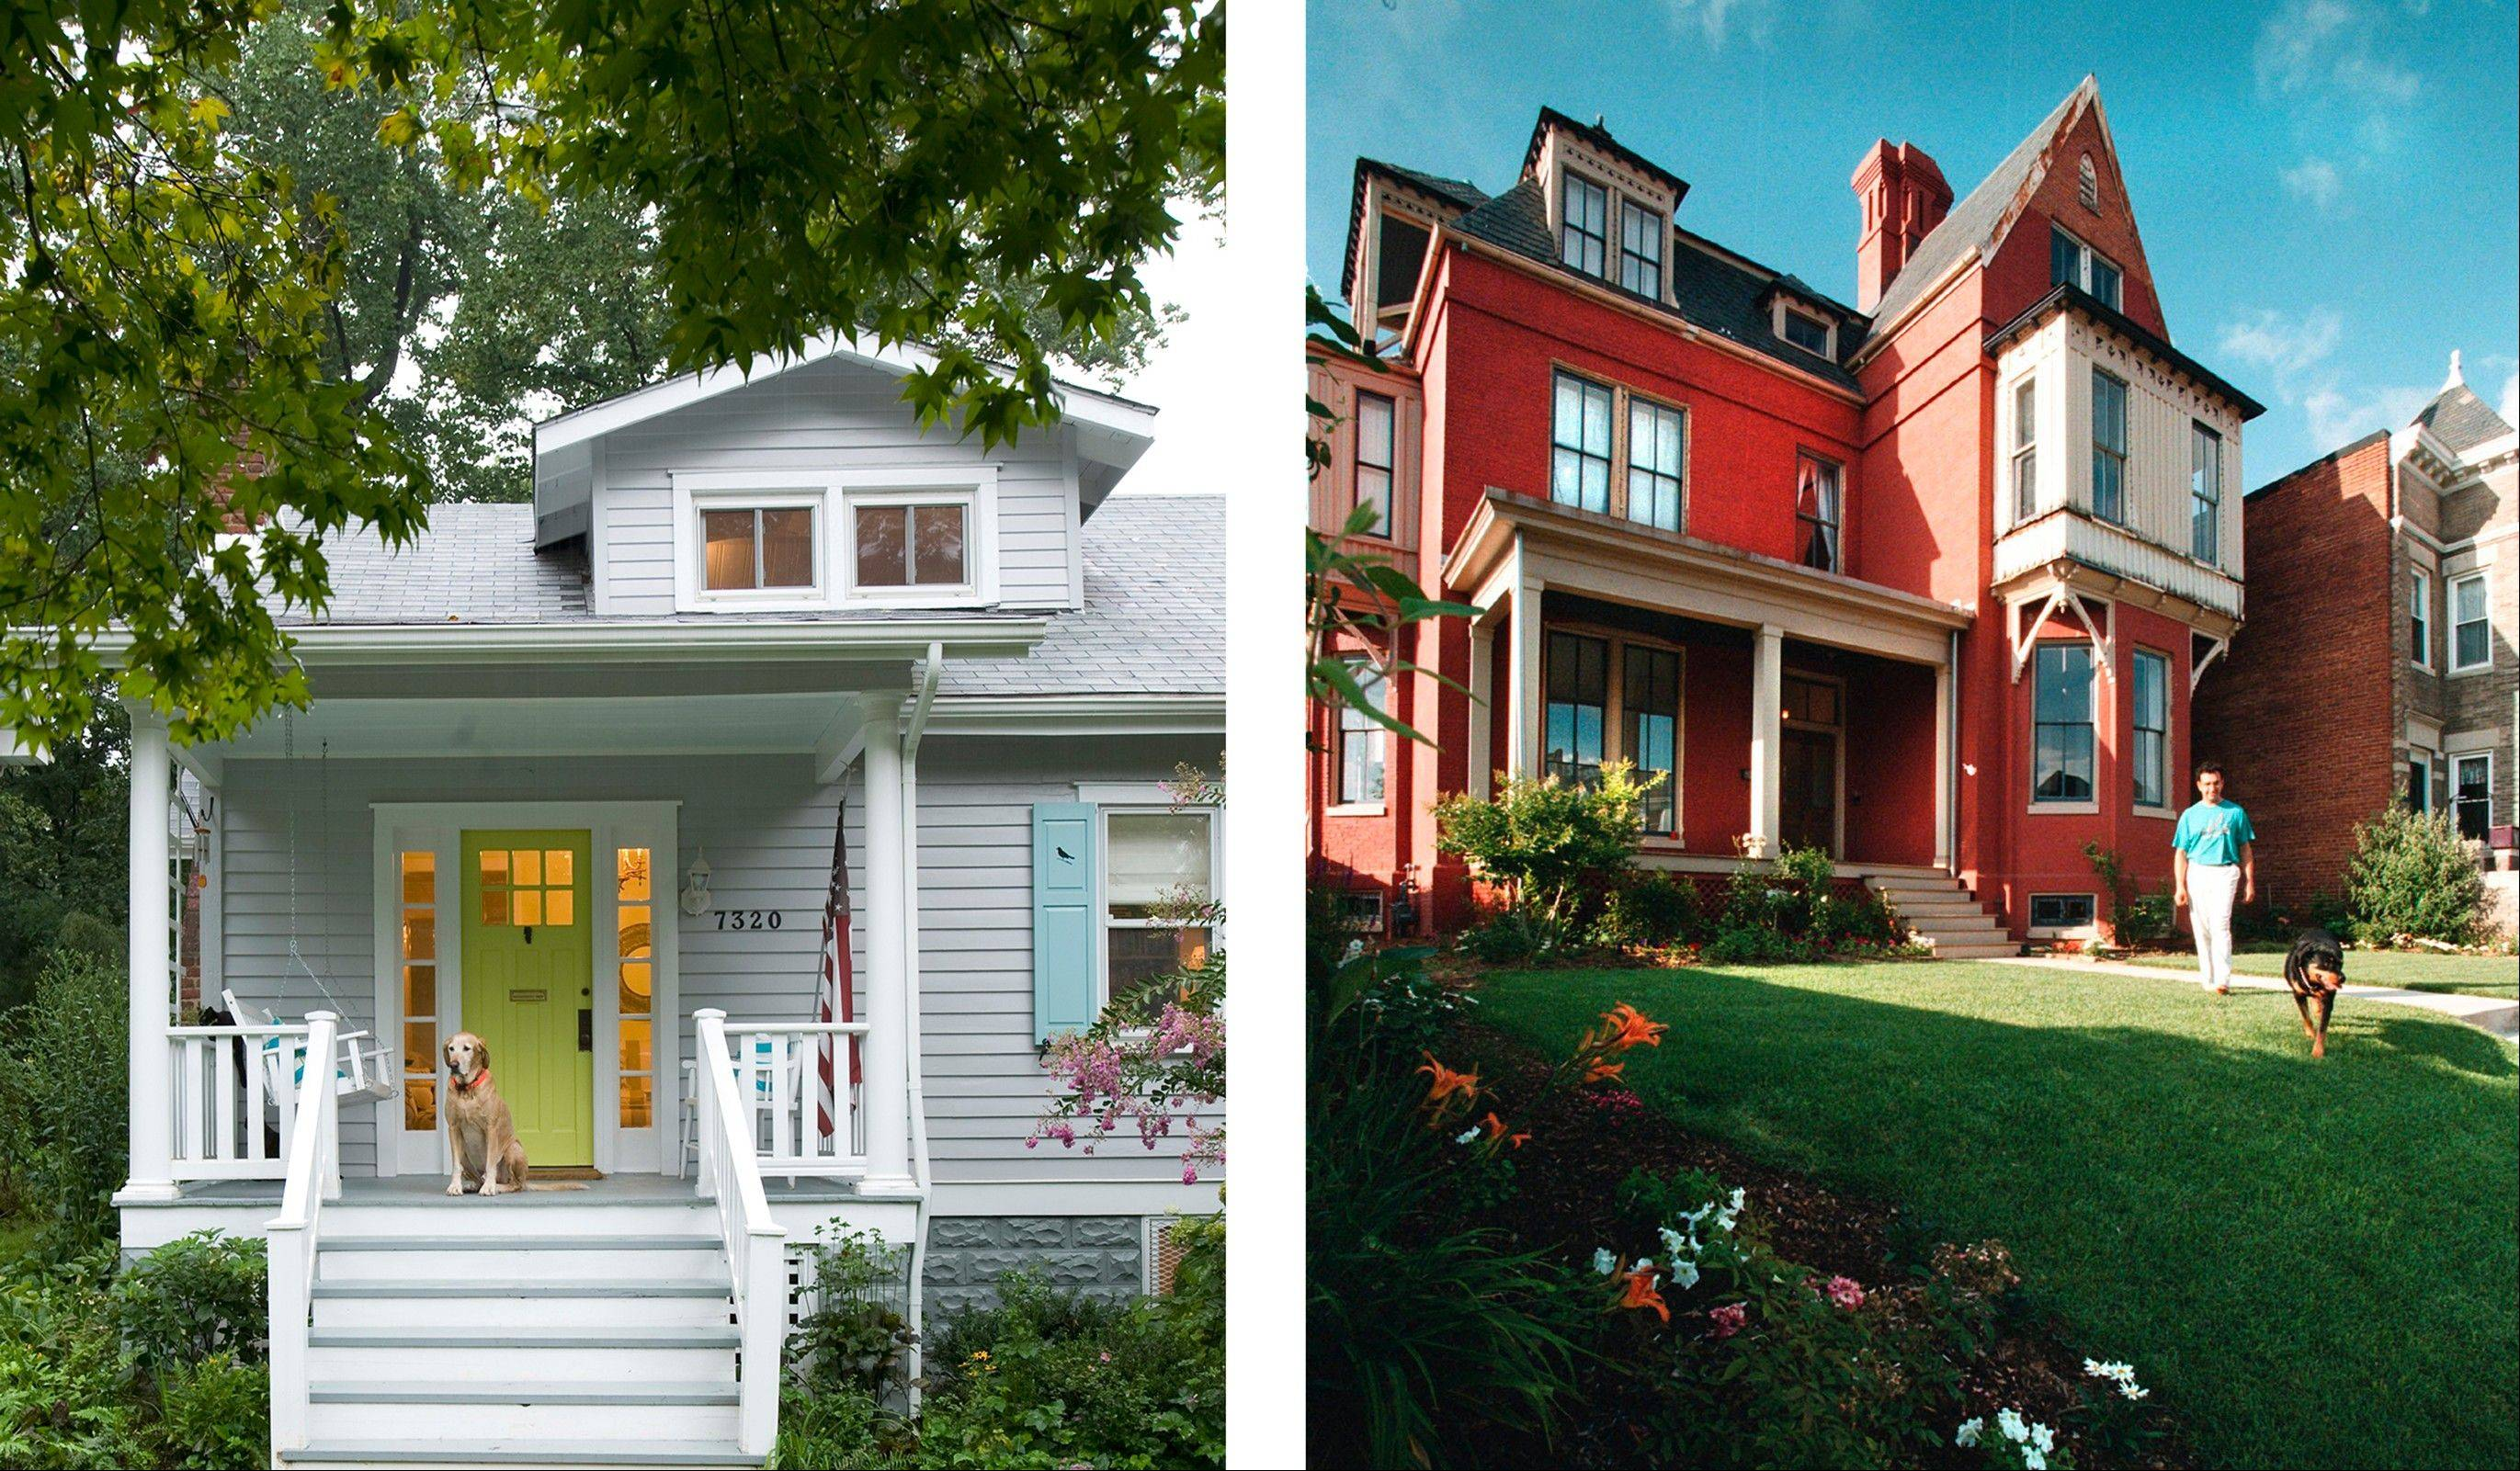 Knowing the style of a home can be helpful for buying, selling, remodeling or decorating; left, a bungalow-style home in Washington, D.C.; right, a Victorian home, also in Washington.